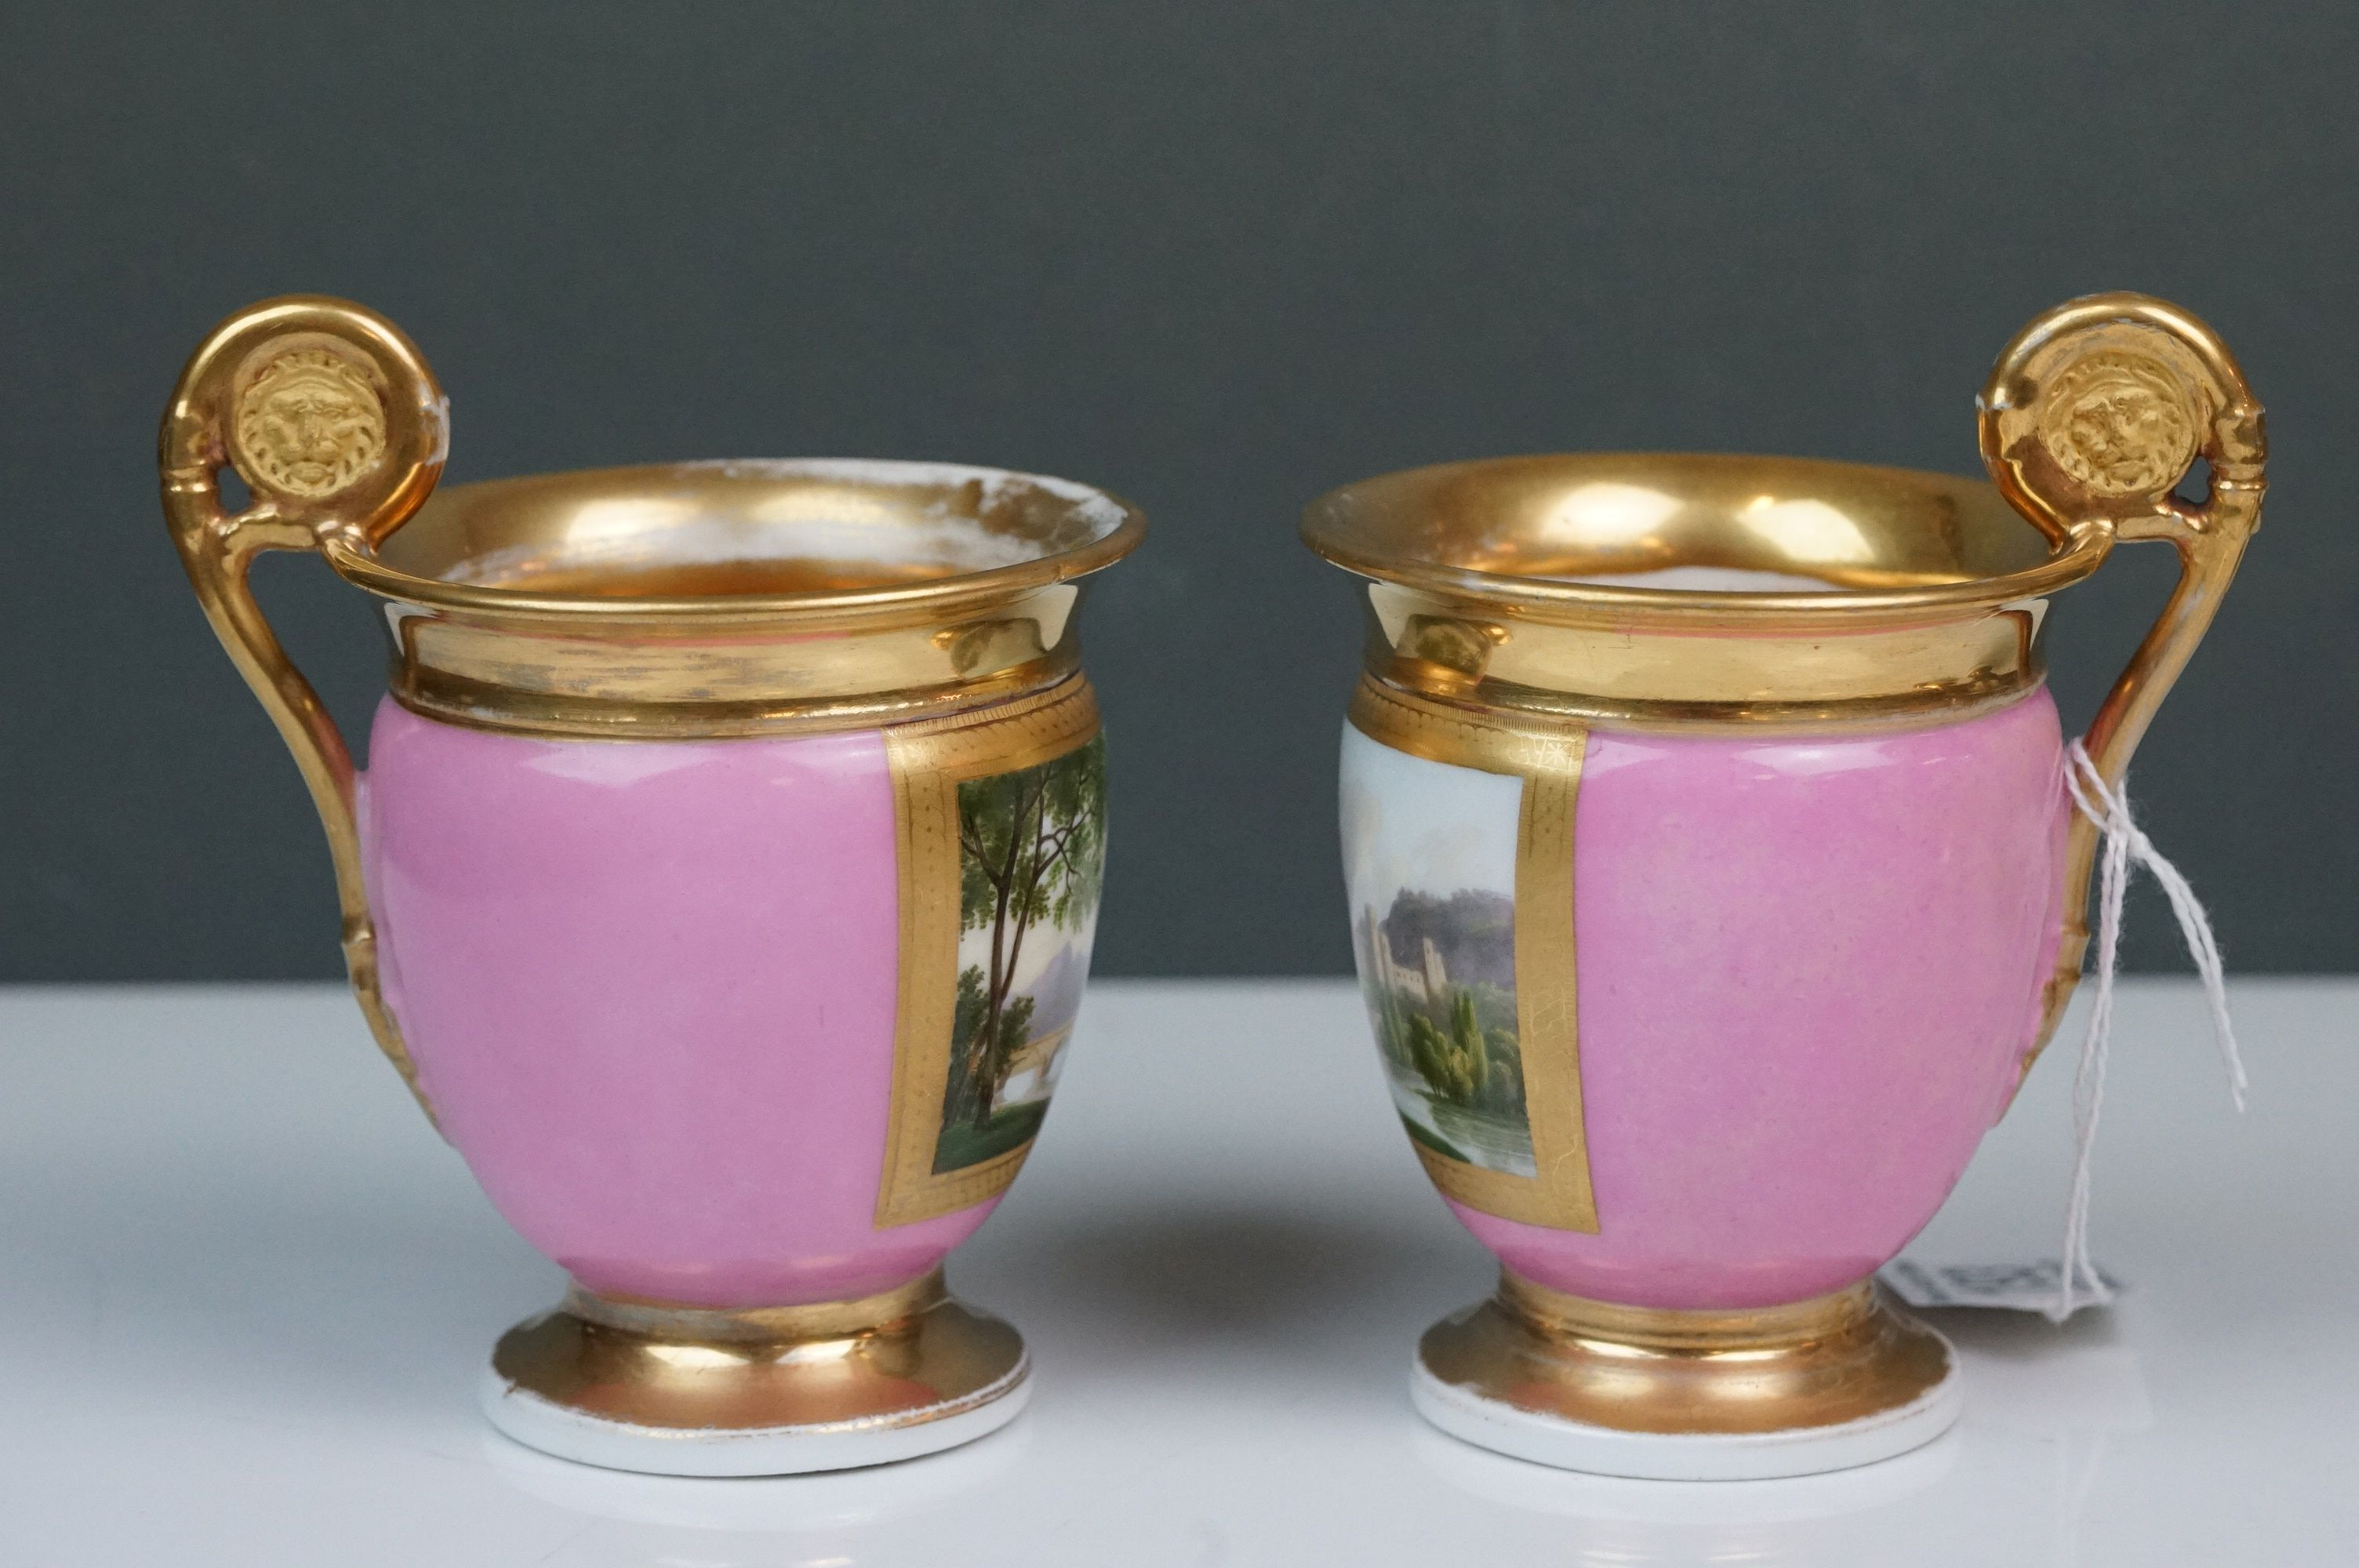 Pair of hand painted Dresden cups, each depicting a different scene: castle and lake scene with - Image 4 of 10